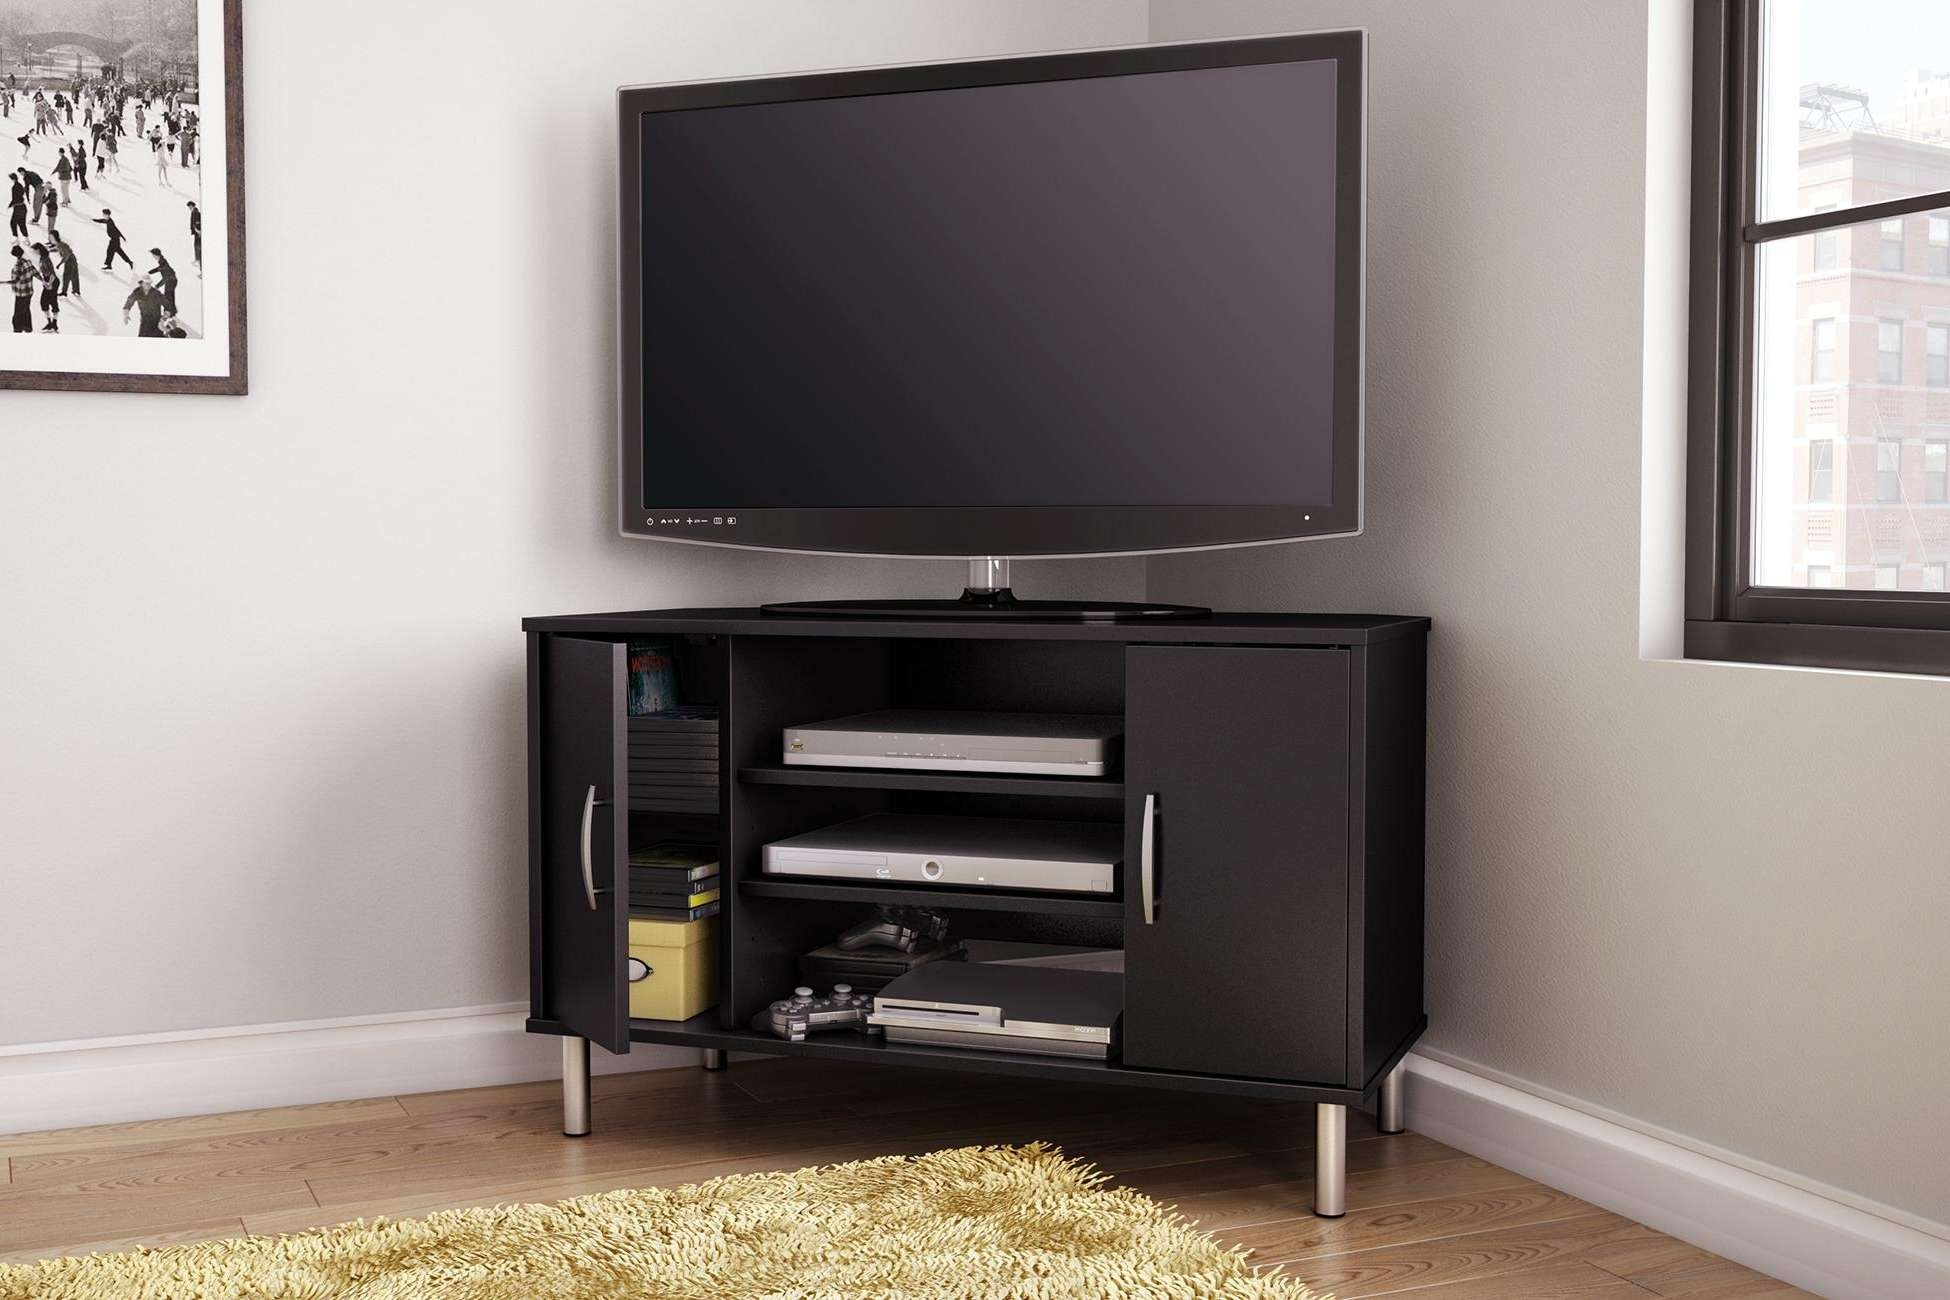 Corner Tv Cabinets For Flat Screen Tvs With Doors • Corner Cabinets Throughout Corner Tv Cabinets For Flat Screens With Doors (View 8 of 20)